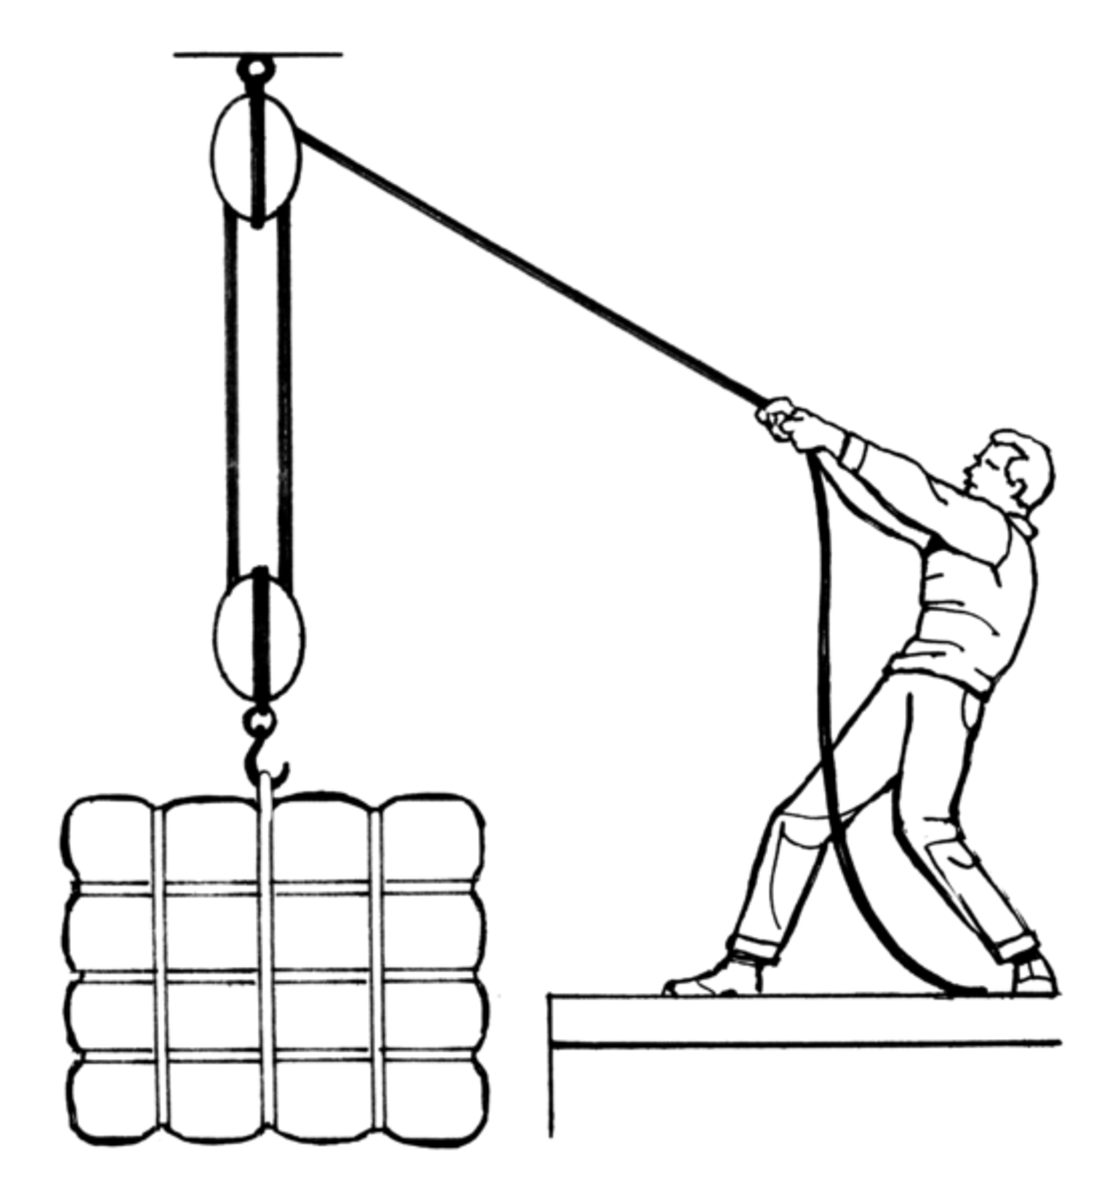 Learn About Simple Machines for Kids